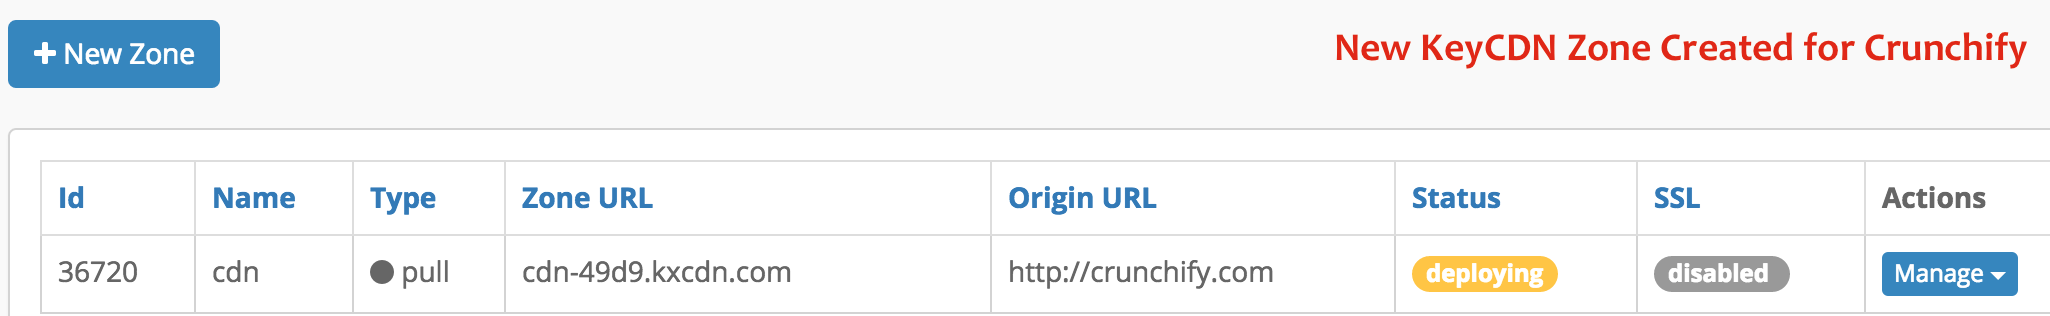 New KeyCDN Zone Created for Crunchify